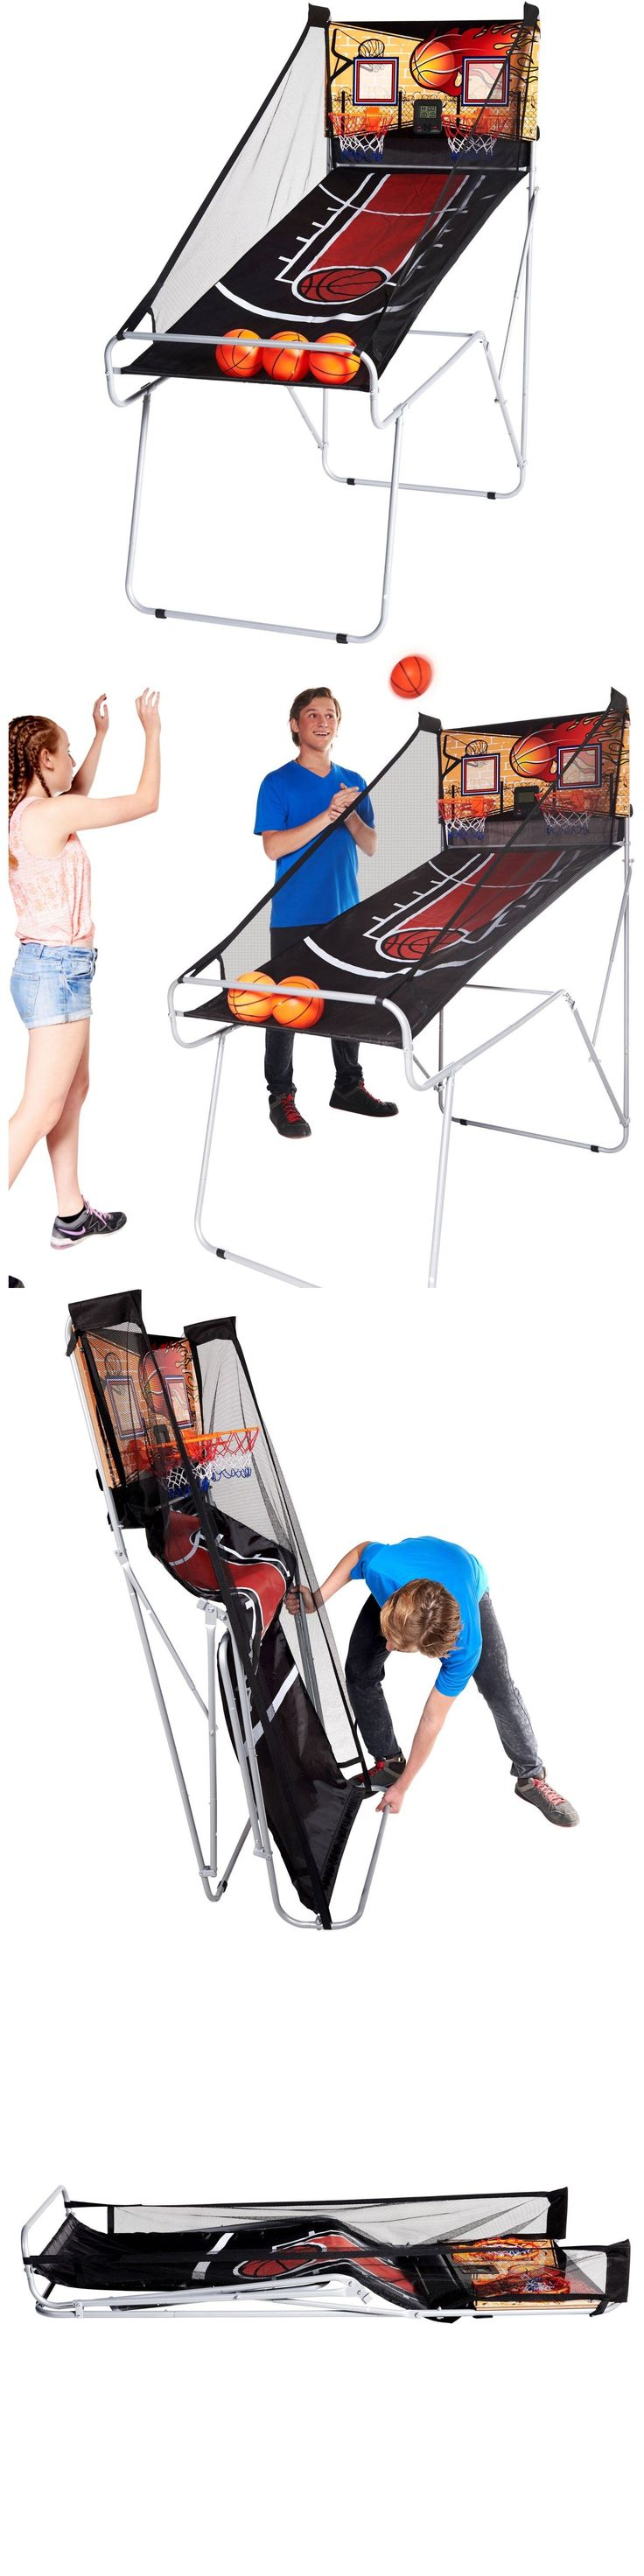 Other Indoor Games 36278: Basketball Game Indoor Electronic Arcade Game Sports Kids 2 Player Birthday Gift BUY IT NOW ONLY: $54.99